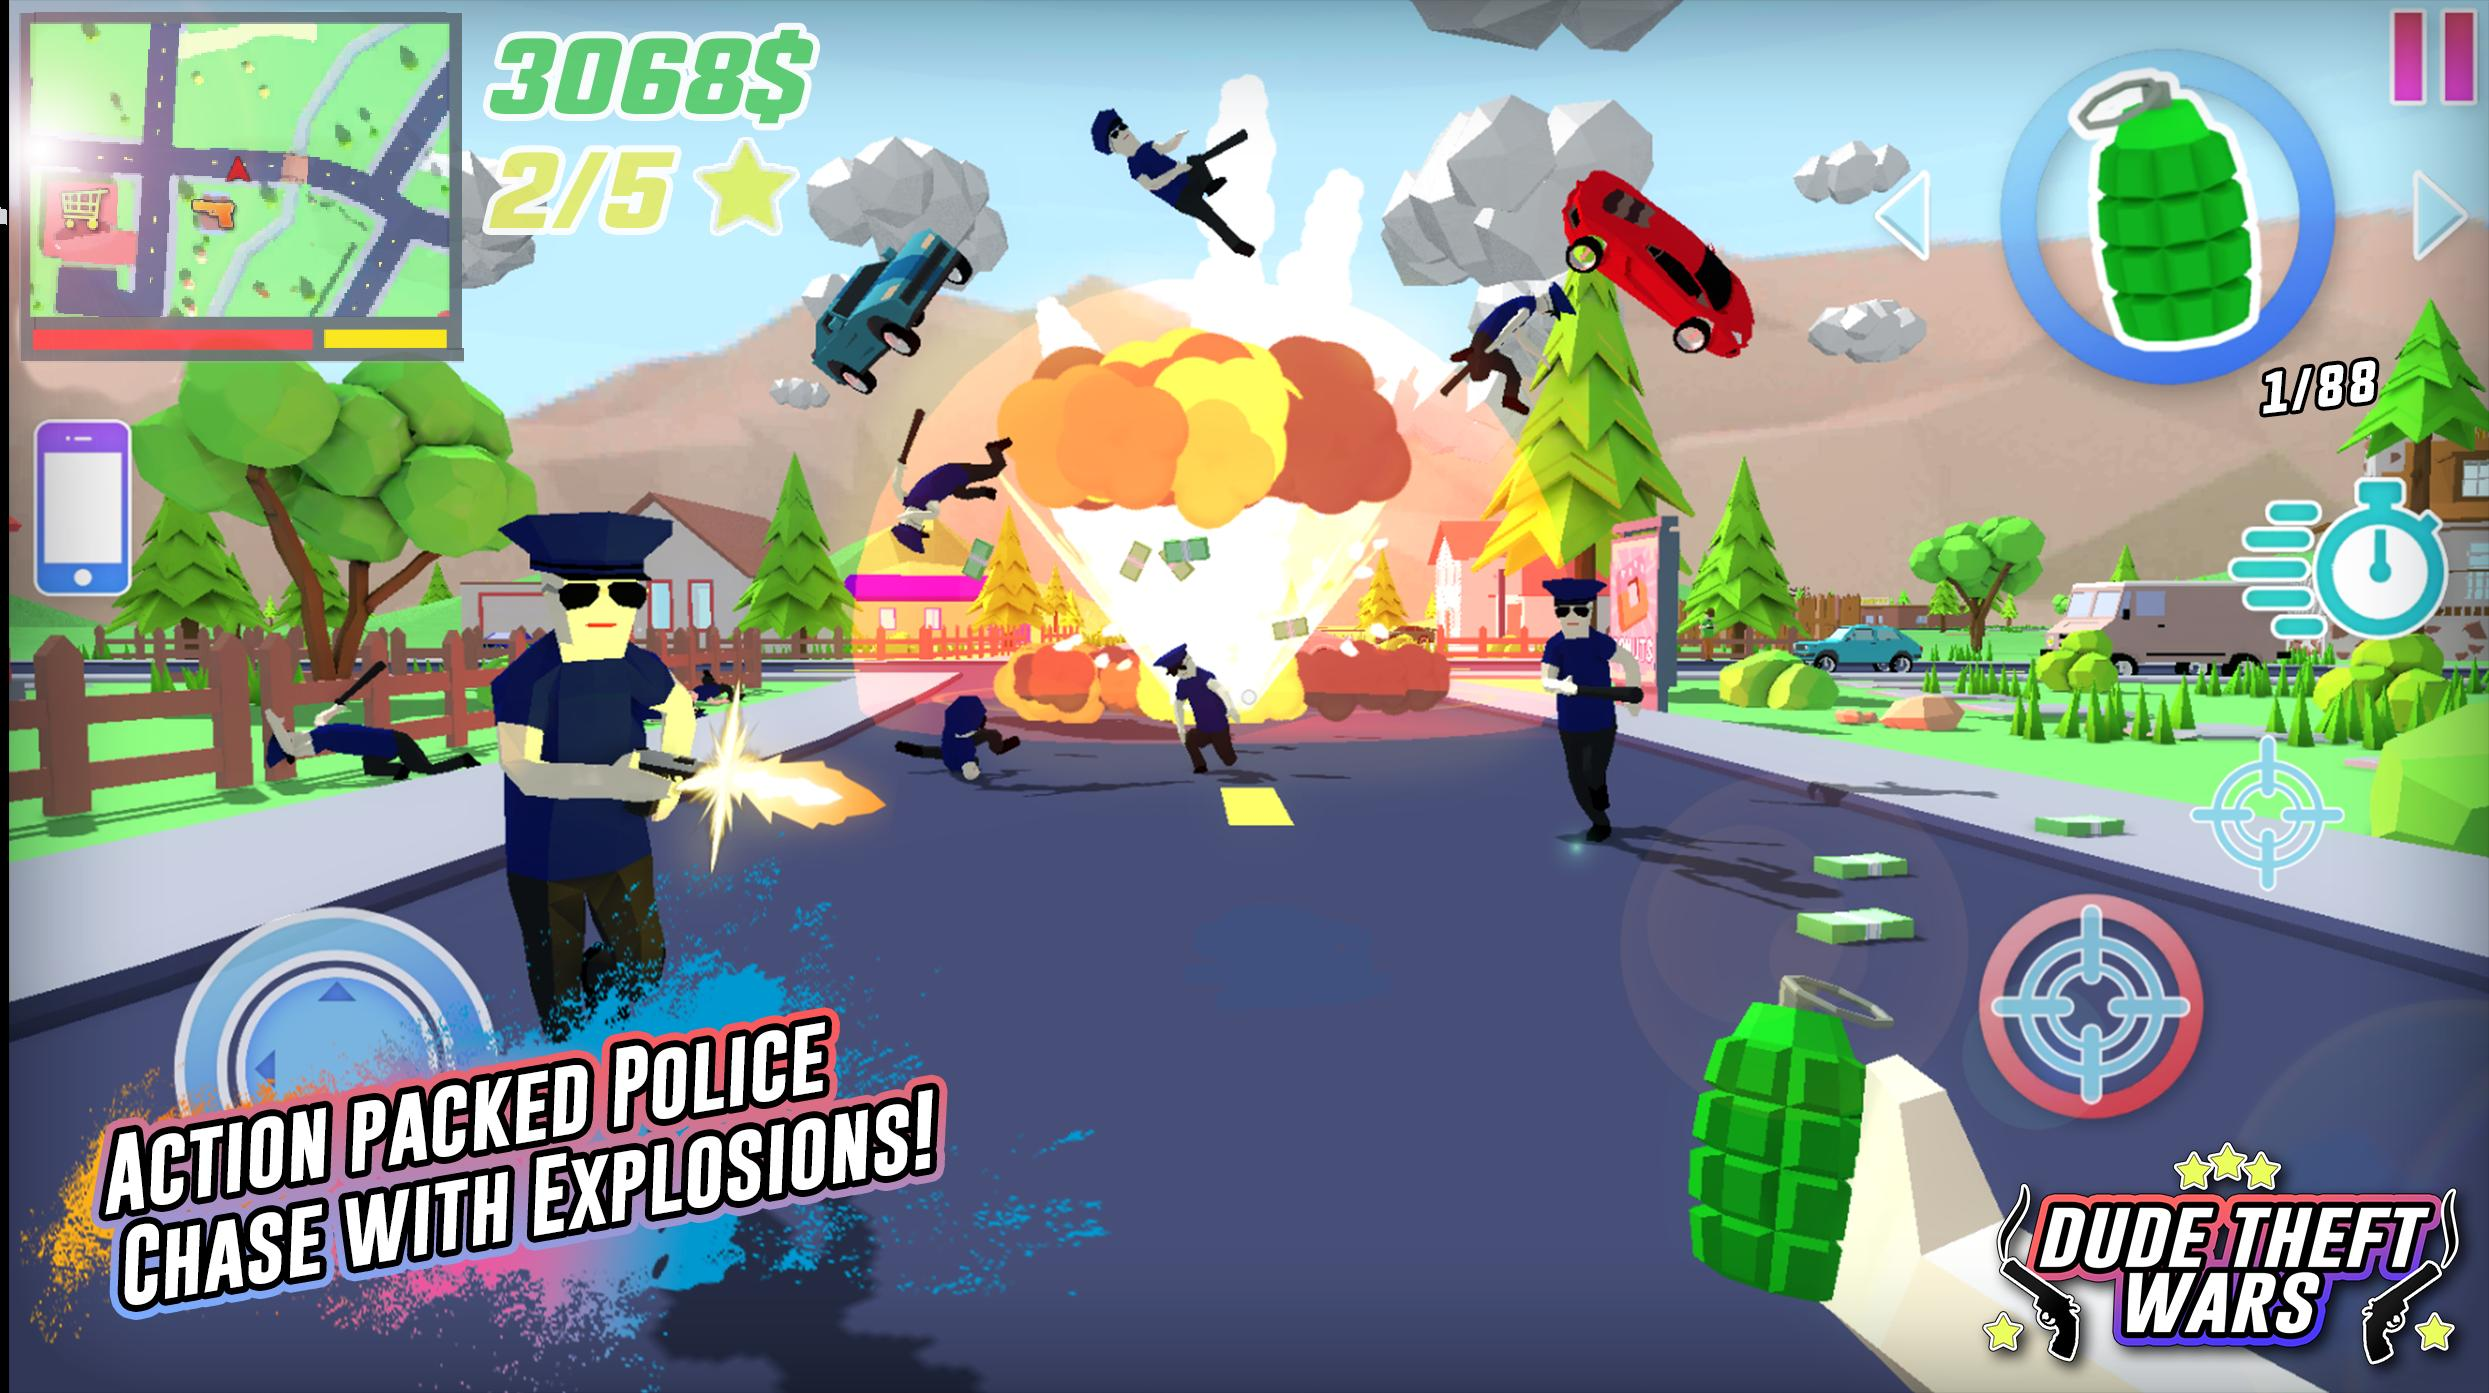 Dude Theft Wars for Android - APK Download